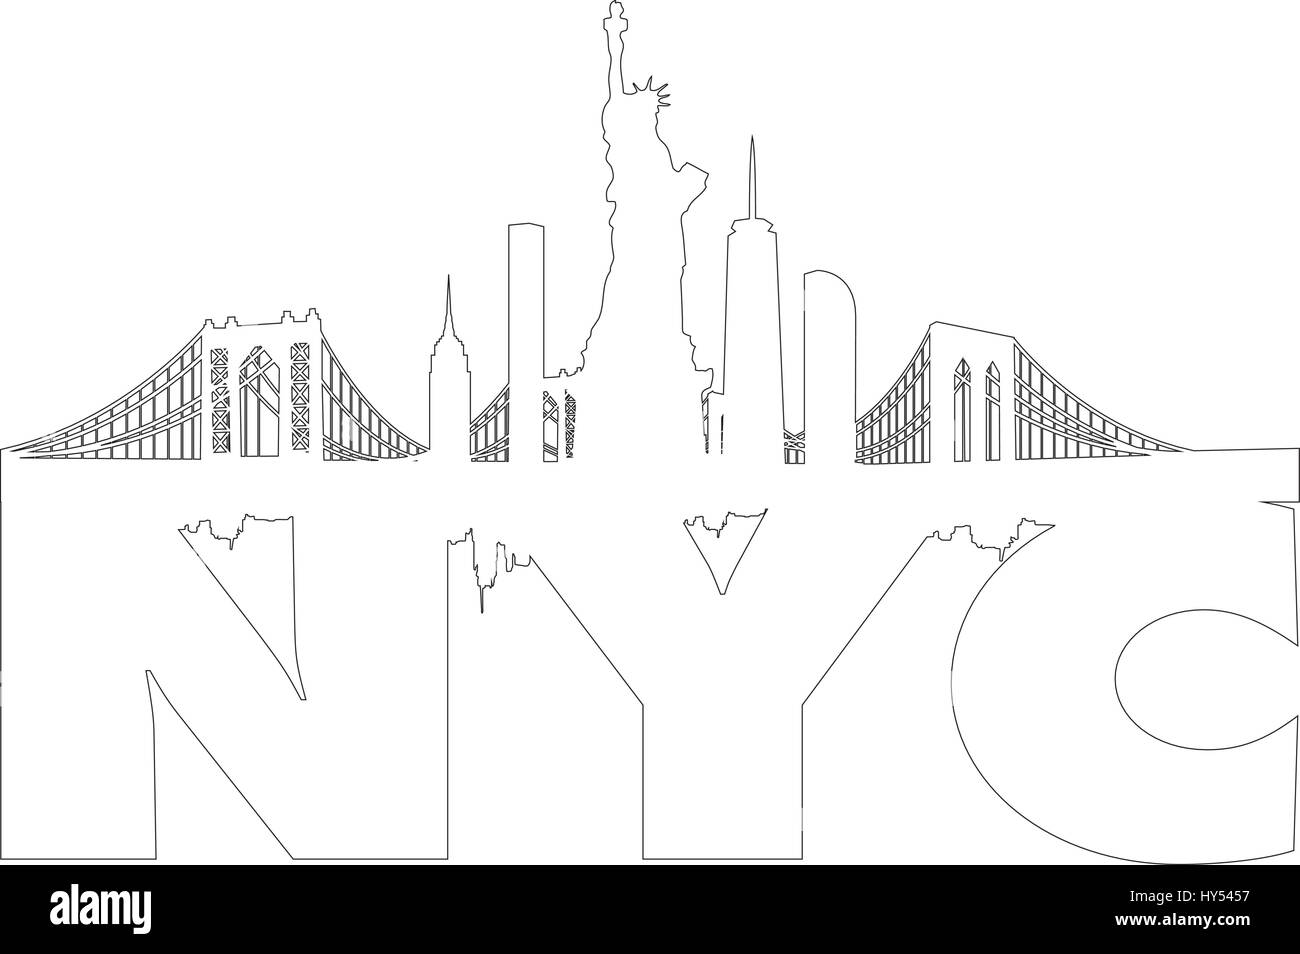 New York City Skyline with Statue of Liberty Vectors series - Stock Vector